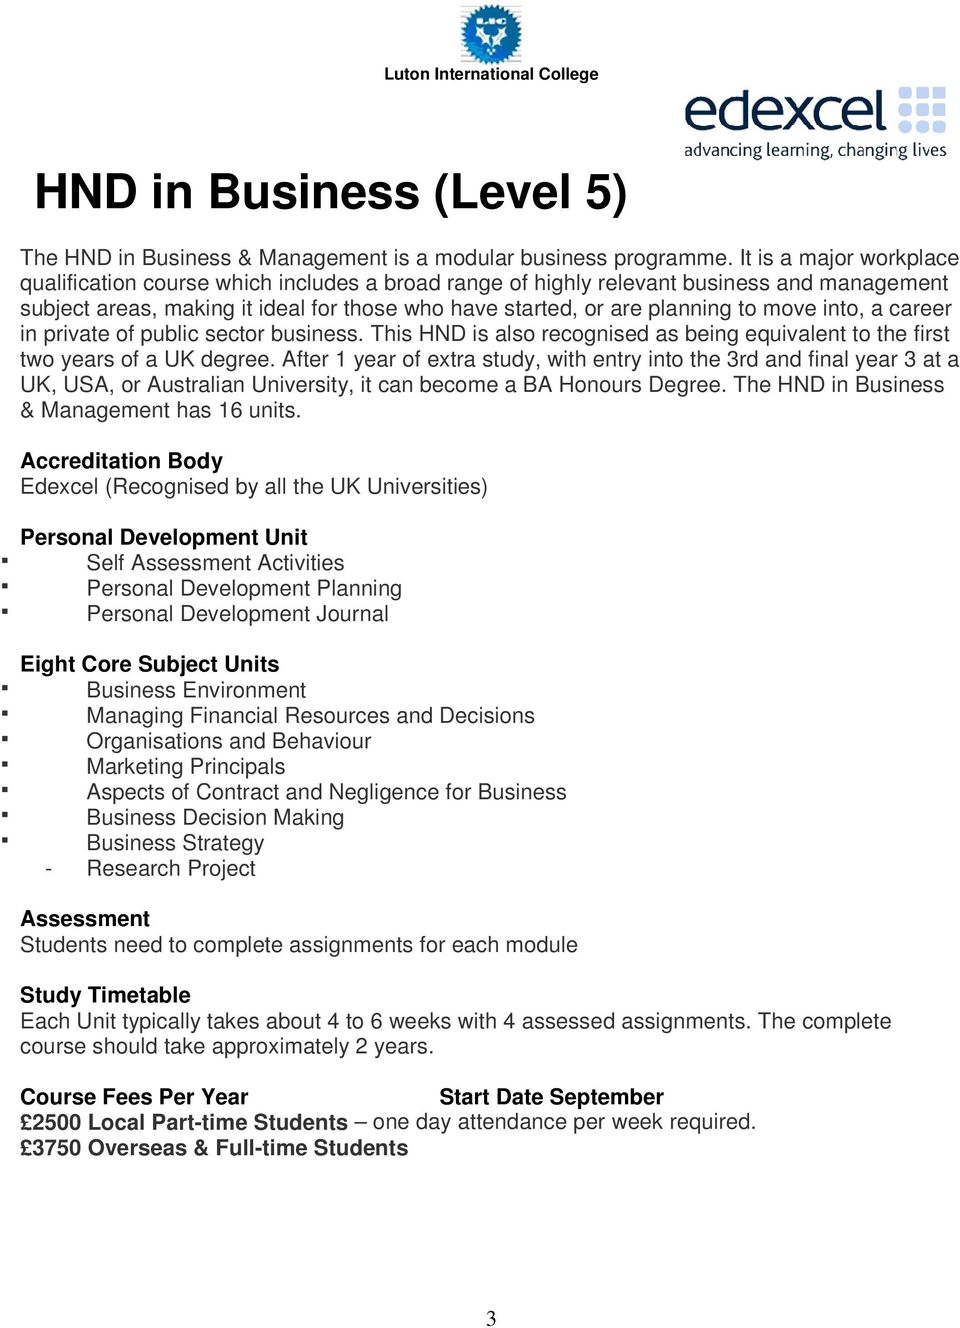 into, a career in private of public sector business. This HND is also recognised as being equivalent to the first two years of a UK degree.